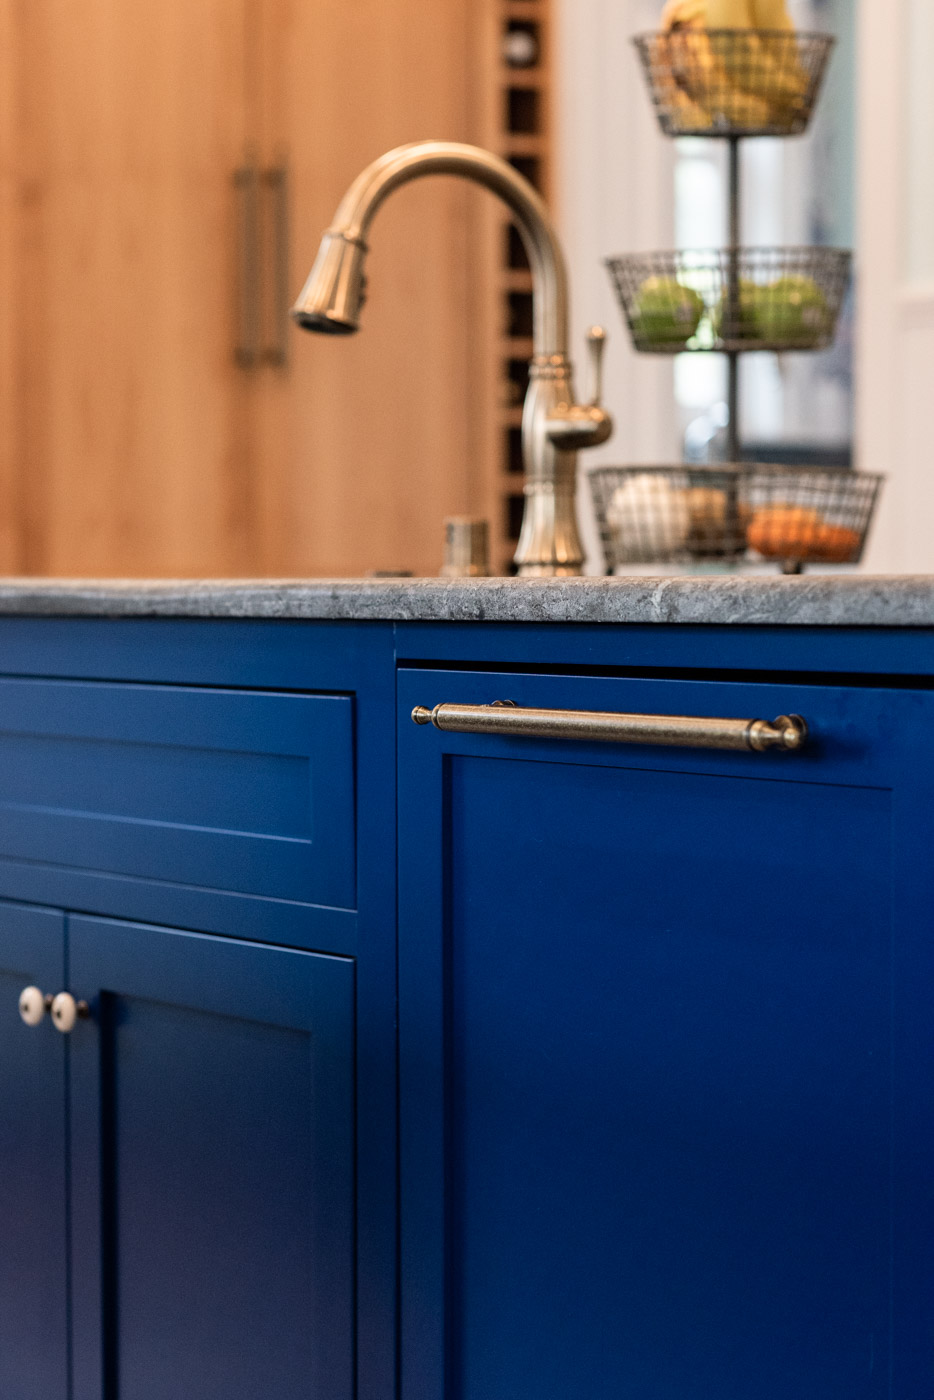 A mix of knobs and bar pull kitchen cabinet hardware in a brass finish against blue custom painted cabinets